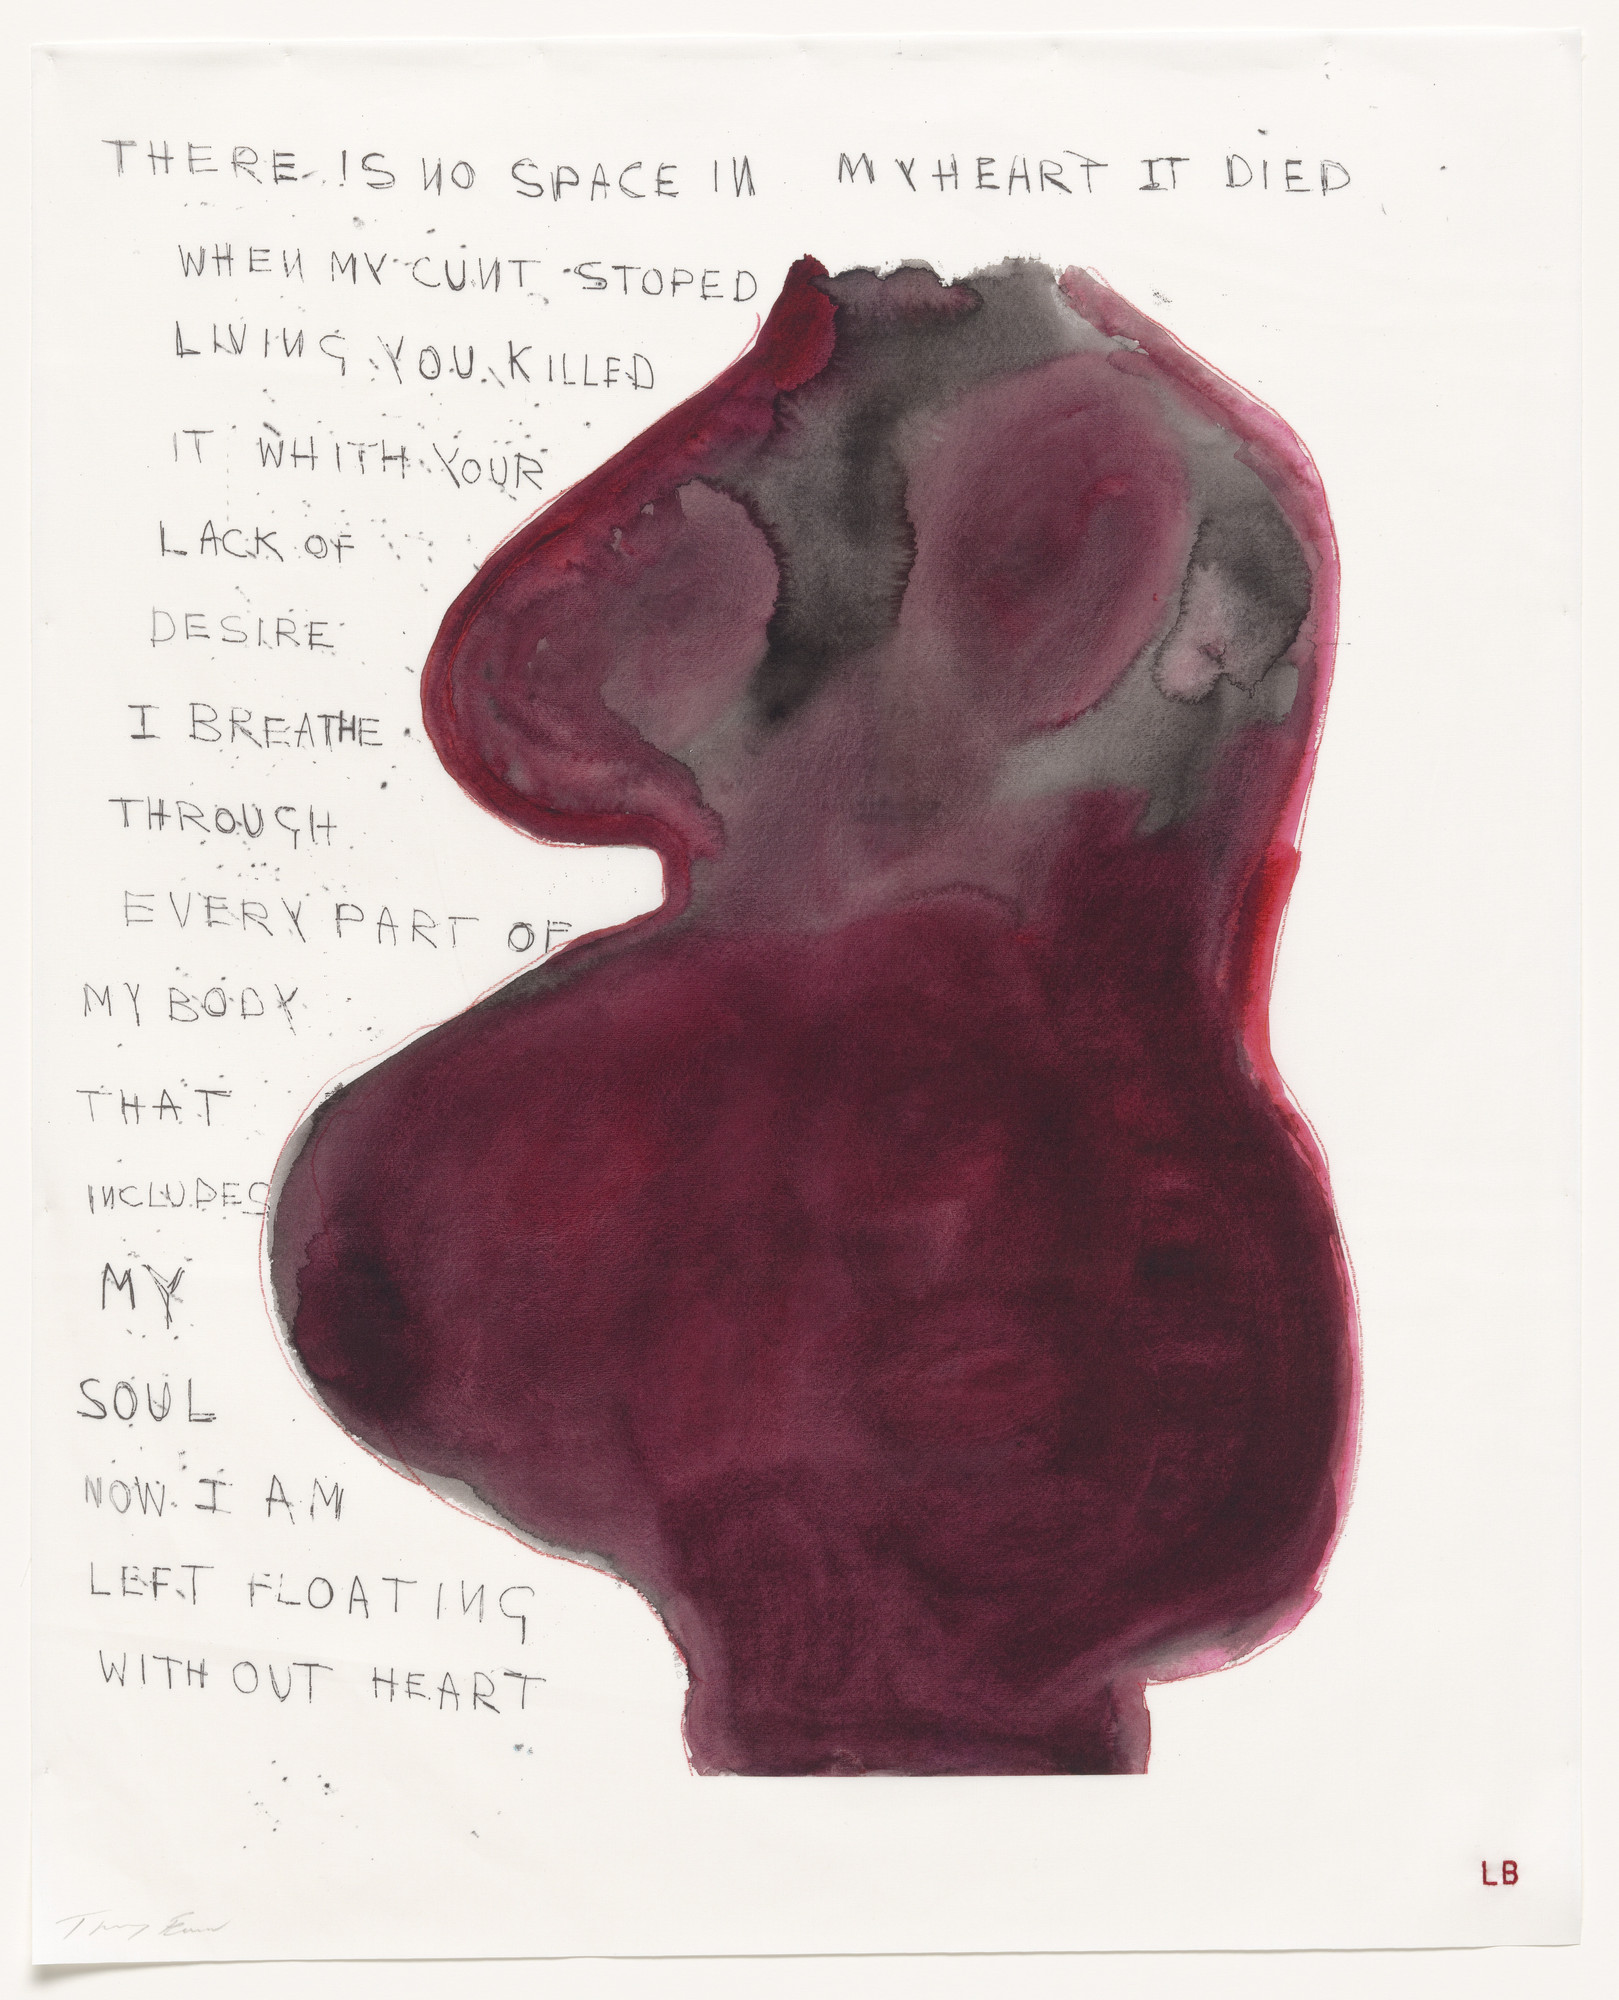 Louise Bourgeois, Tracey Emin. When My Cunt Stopped Living, no. 16 of 16, from the series, Do Not Abandon Me. 2009-2010